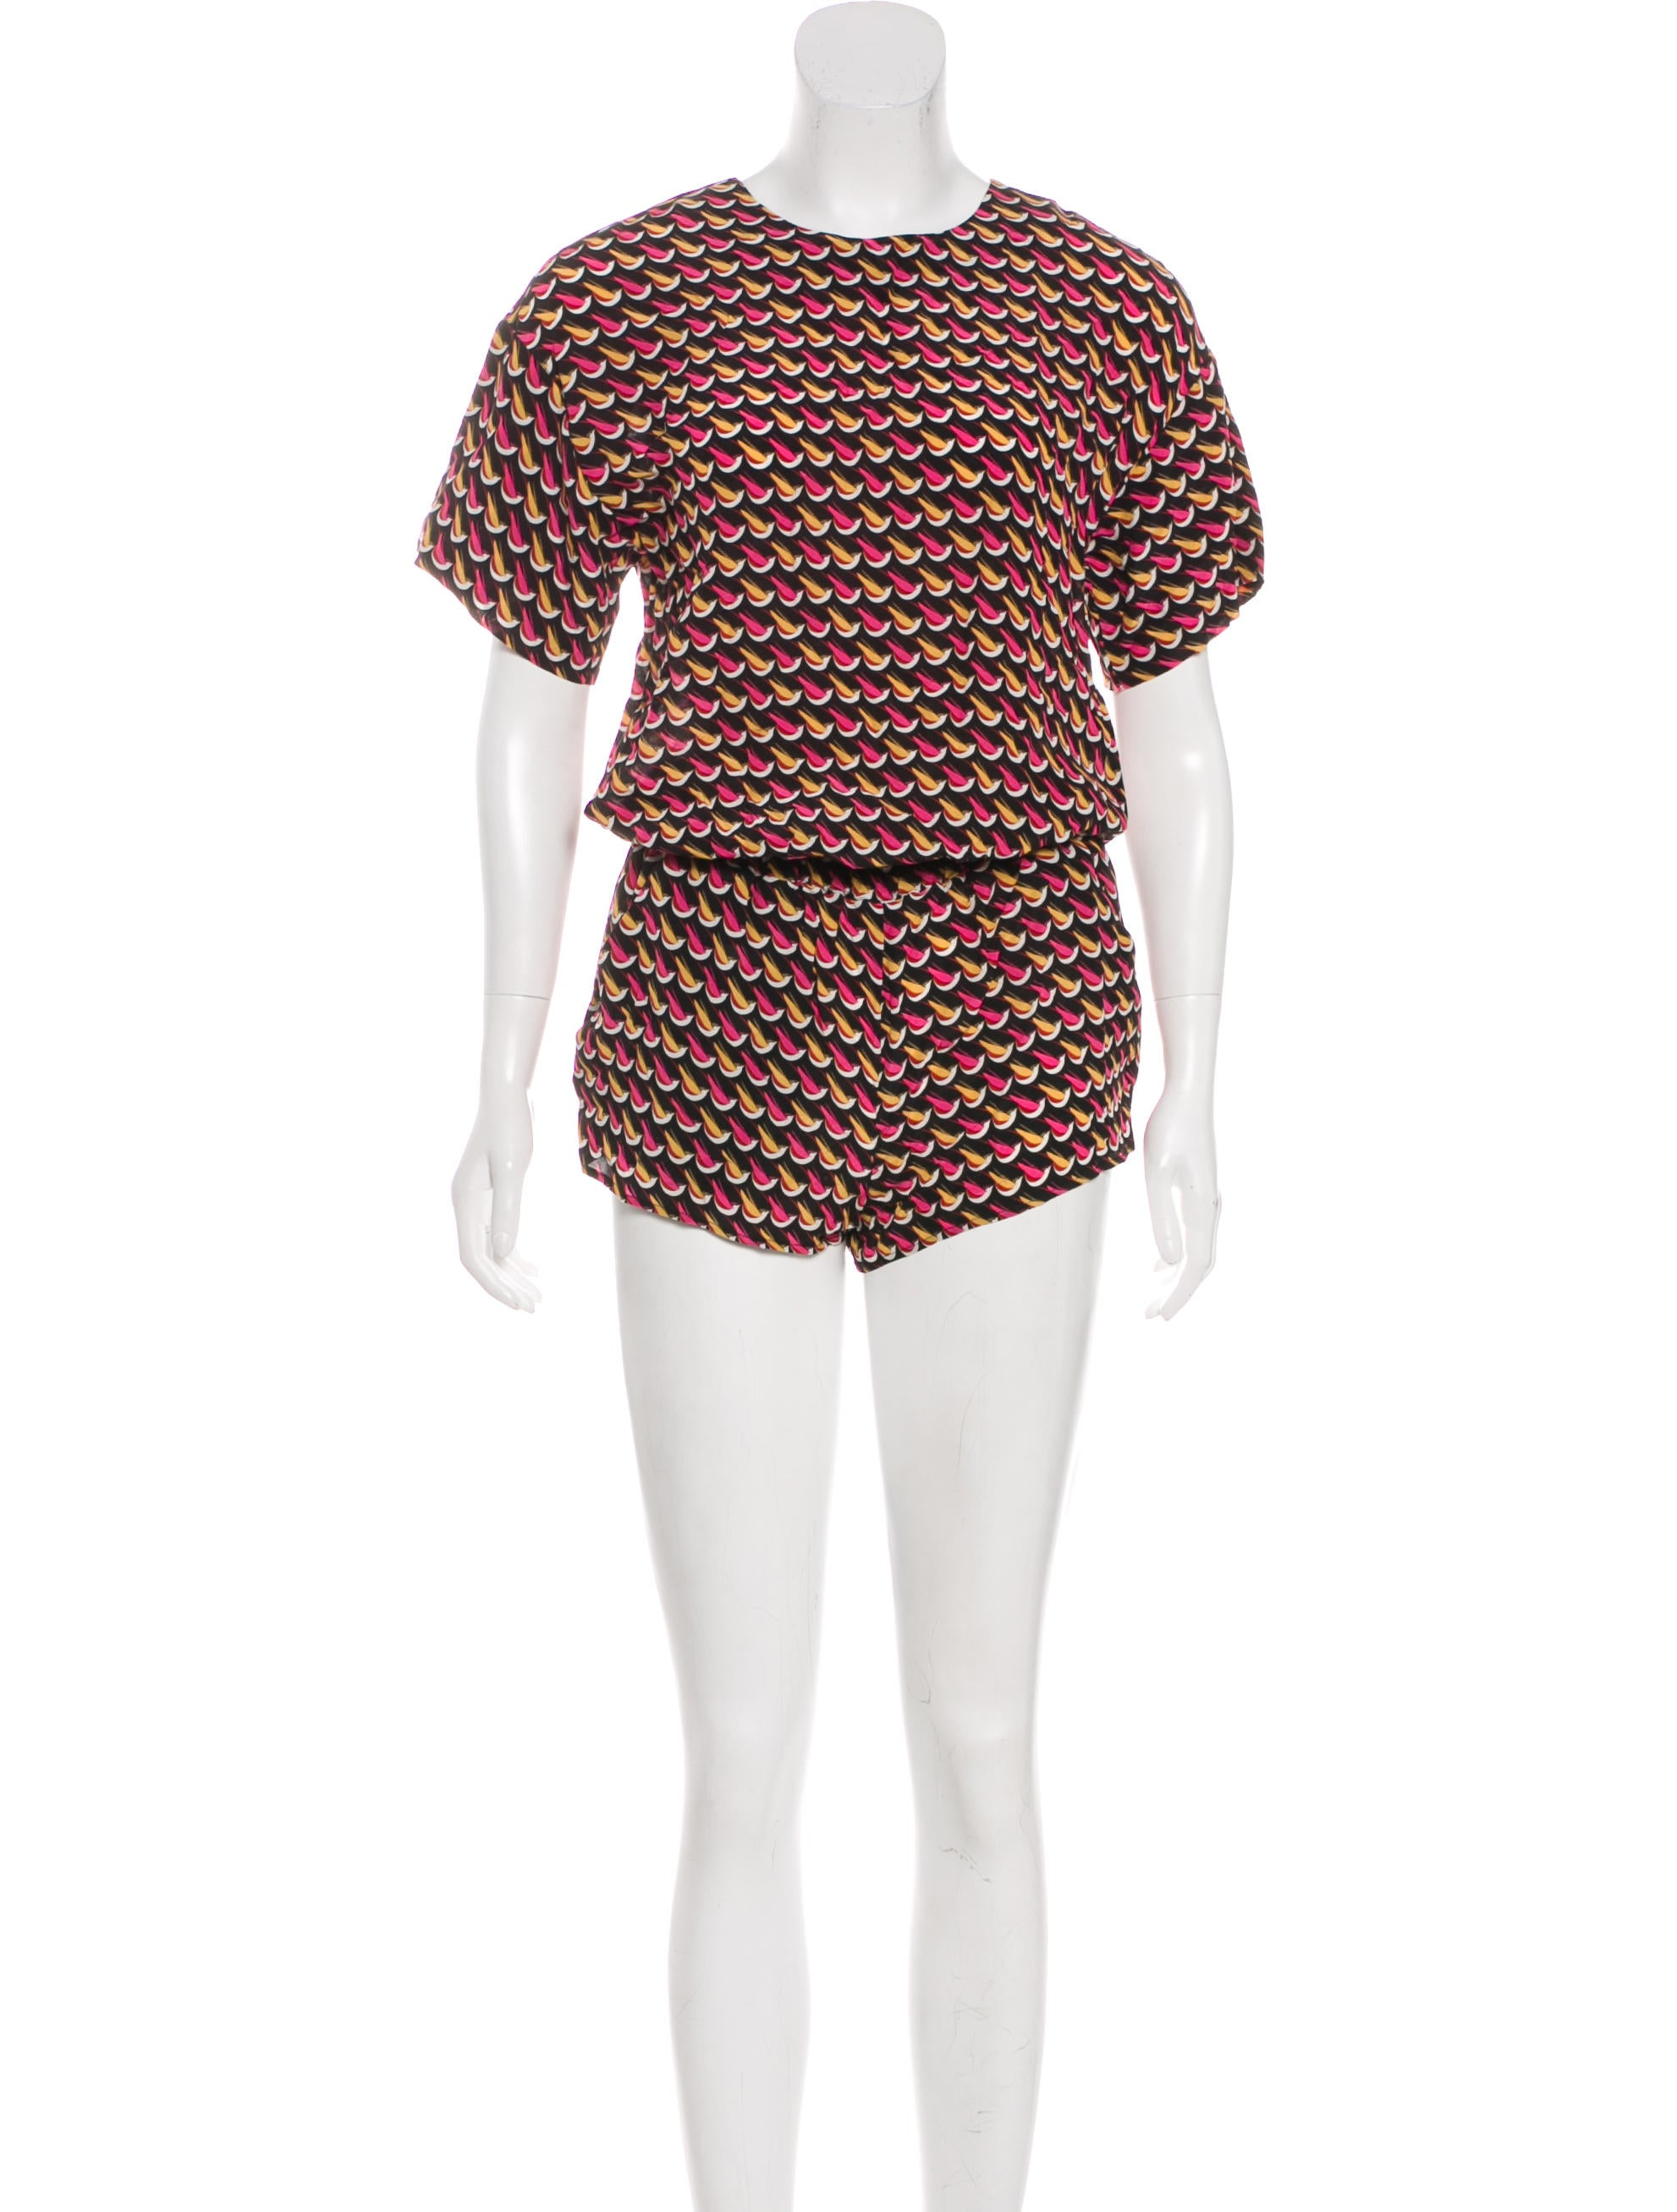 Cheap Sneakernews Red Valentino Silk Printed Romper Sale Countdown Package Shop DLnWhtdHDA